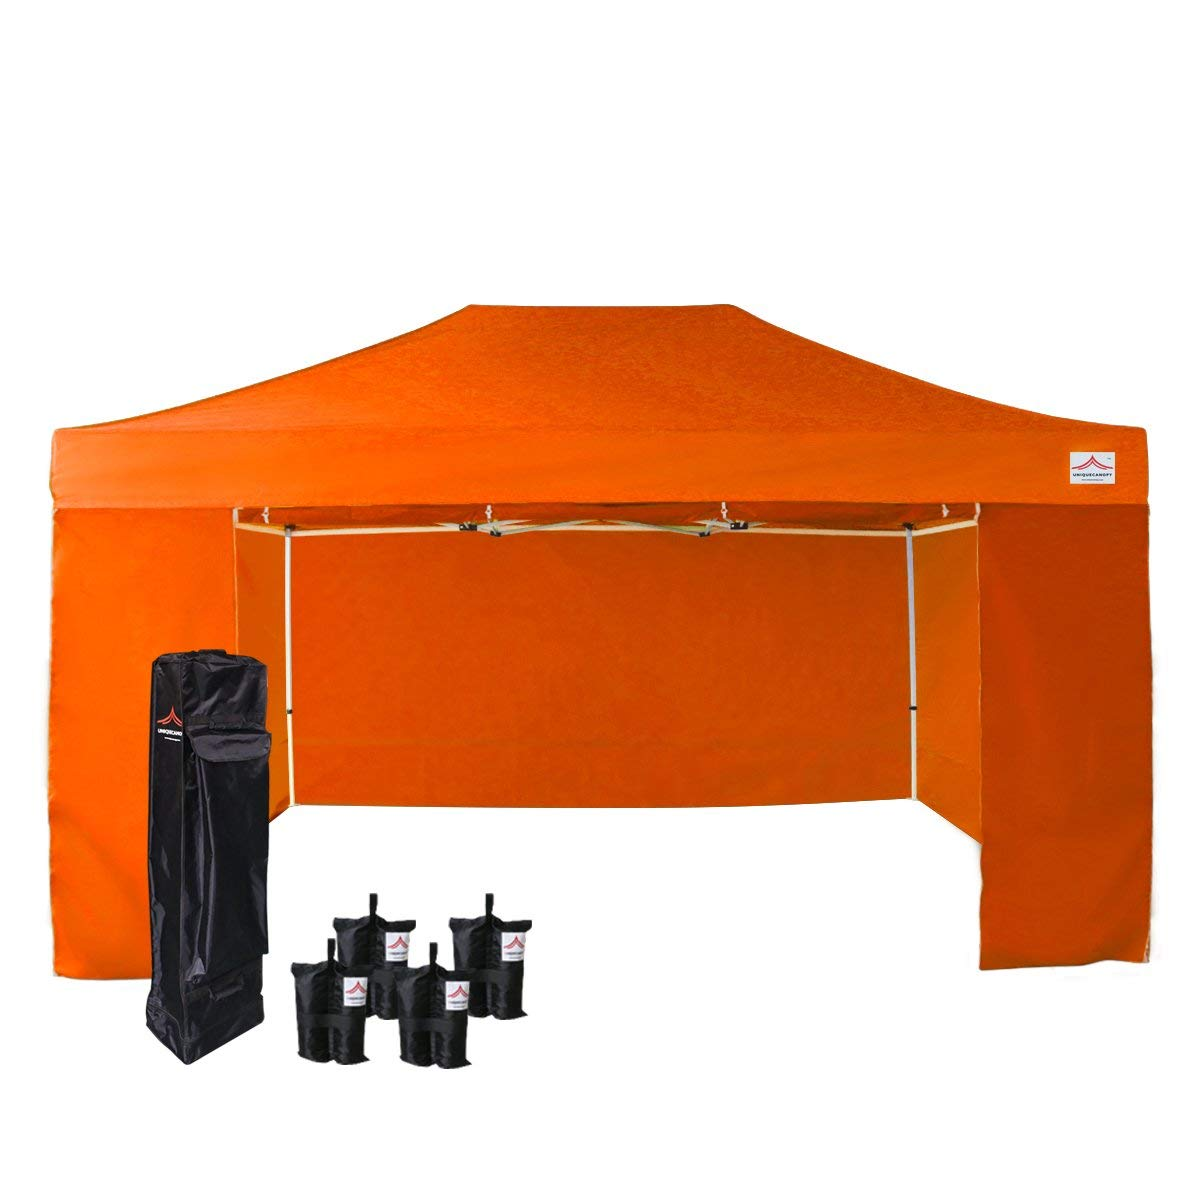 UNIQUECANOPY 500D Enhanced 10x15 Ez Pop up Canopy Portable Folded Commercial Canopy Car Shelter Wedding Party Show Tent with 4 Zippered Side Walls and Wheeled Carrying Bag Orange